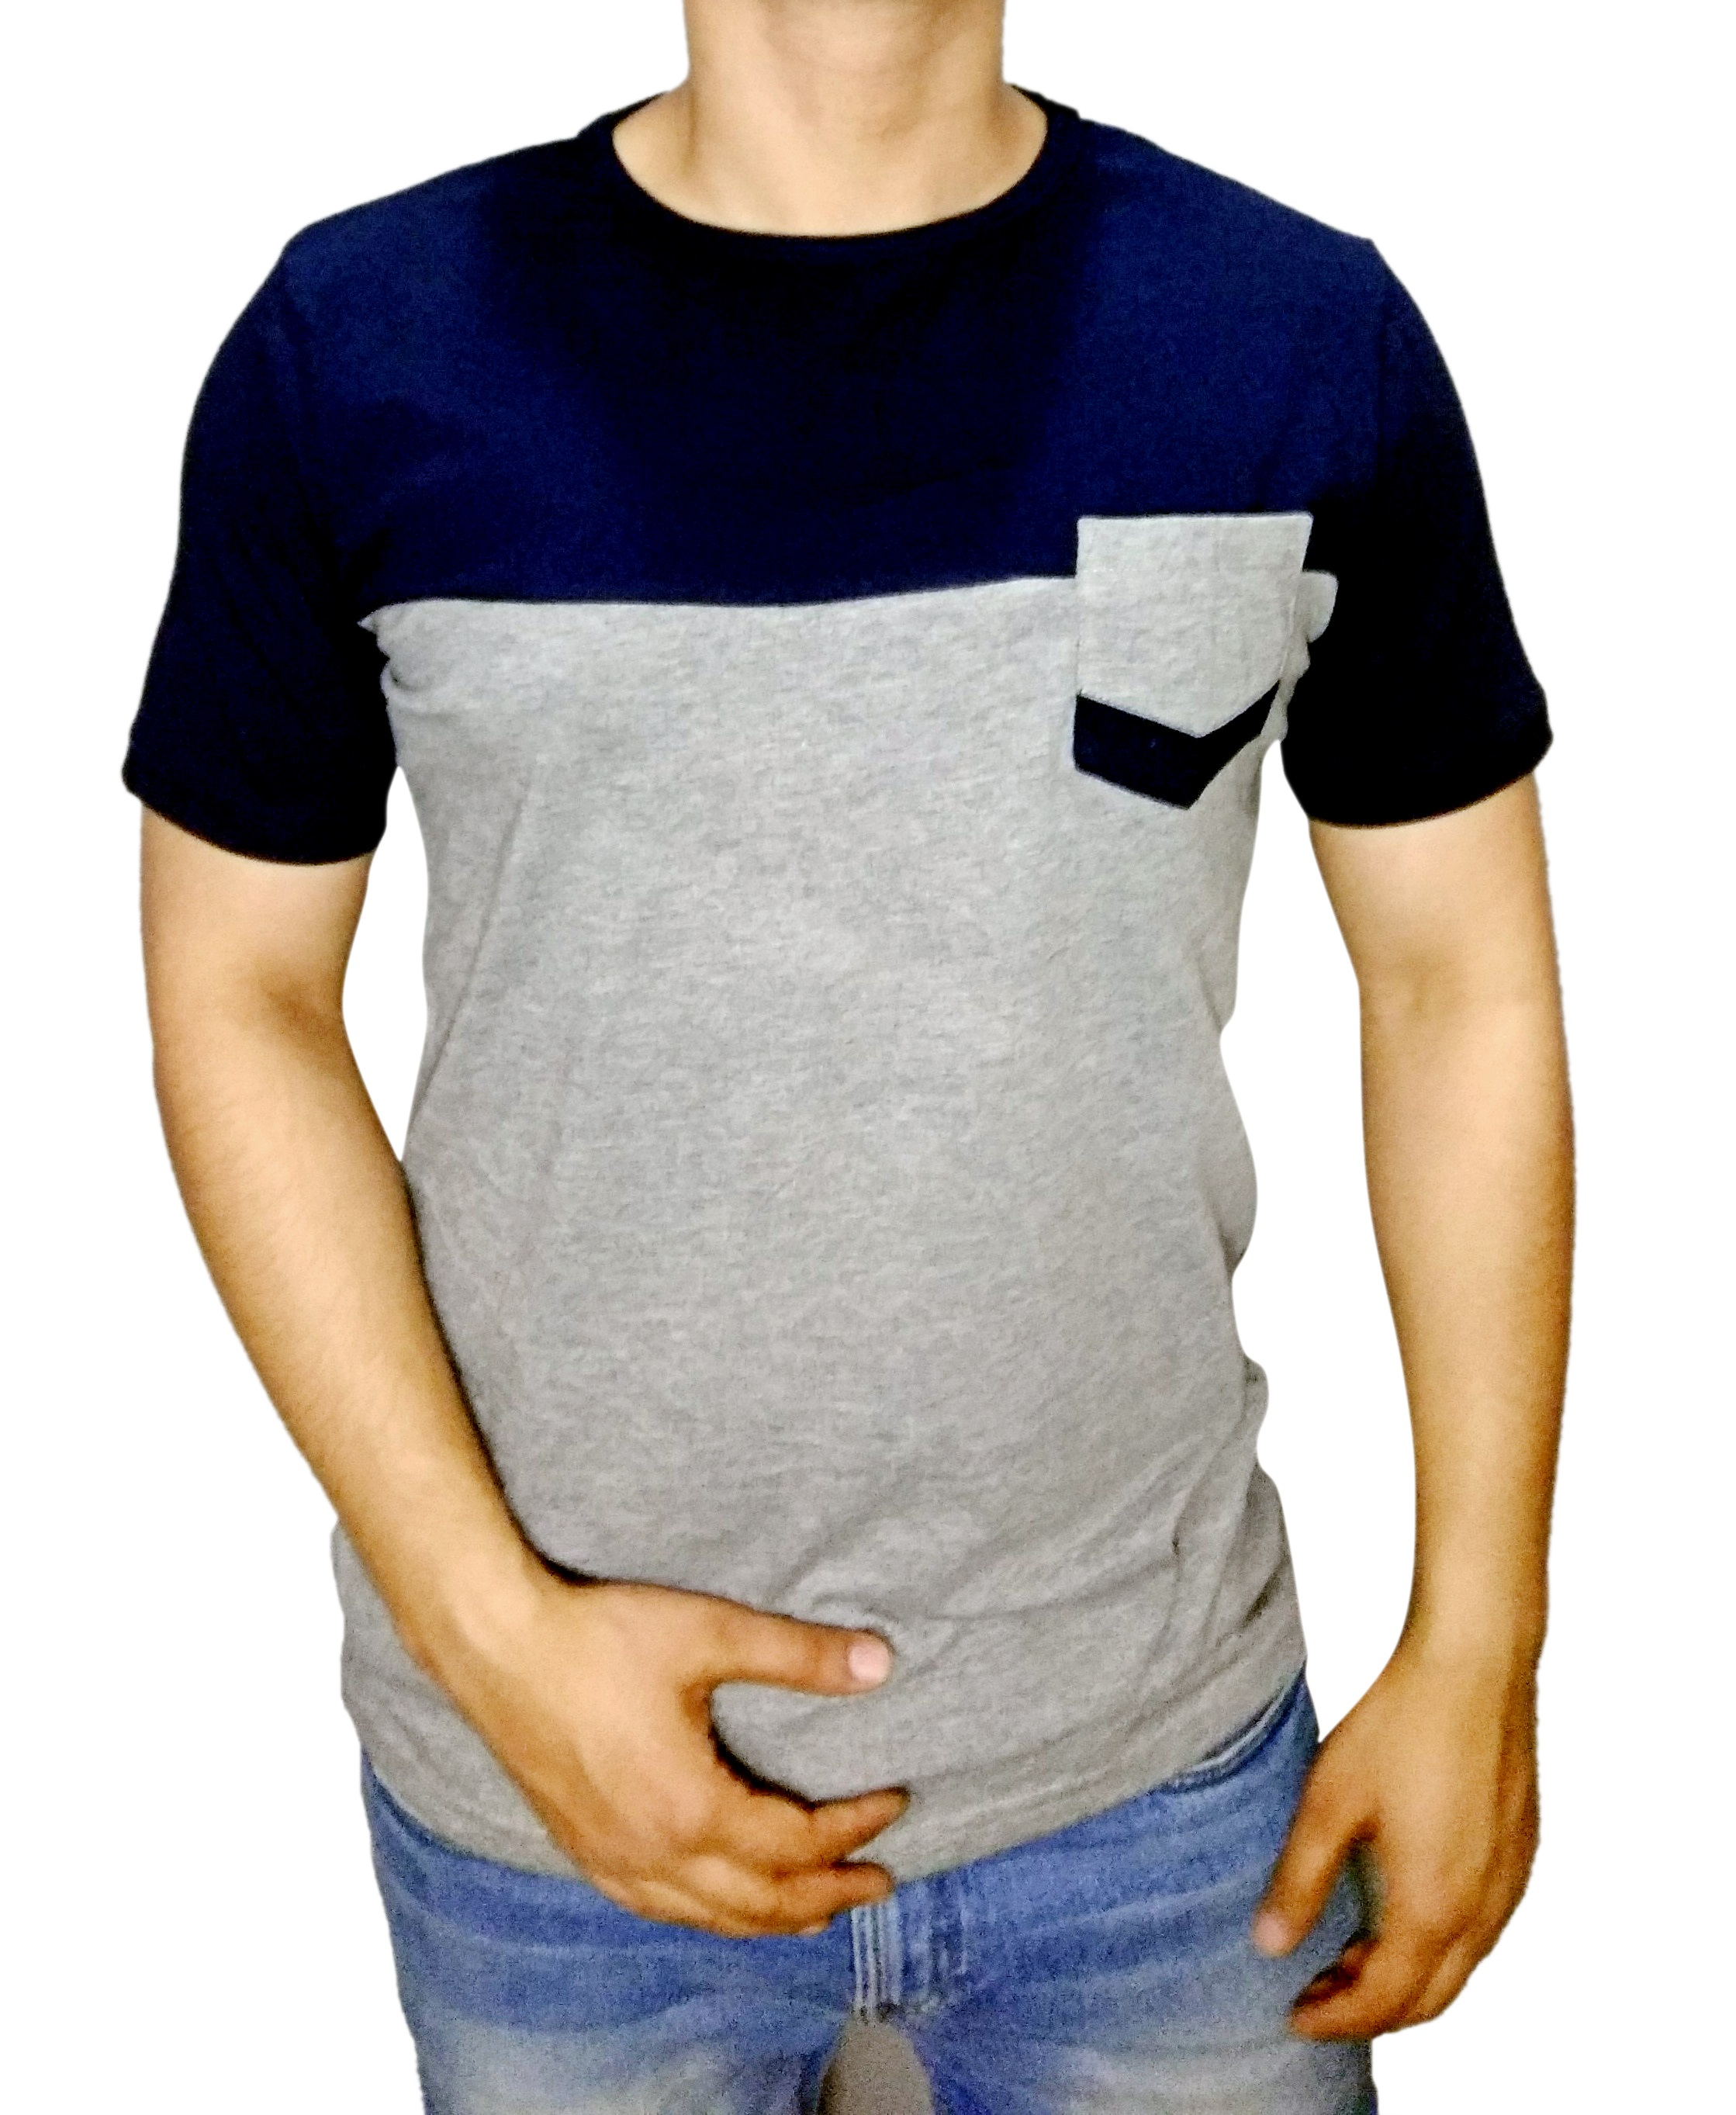 Mens round neck t-shirt with pocket navy & grey